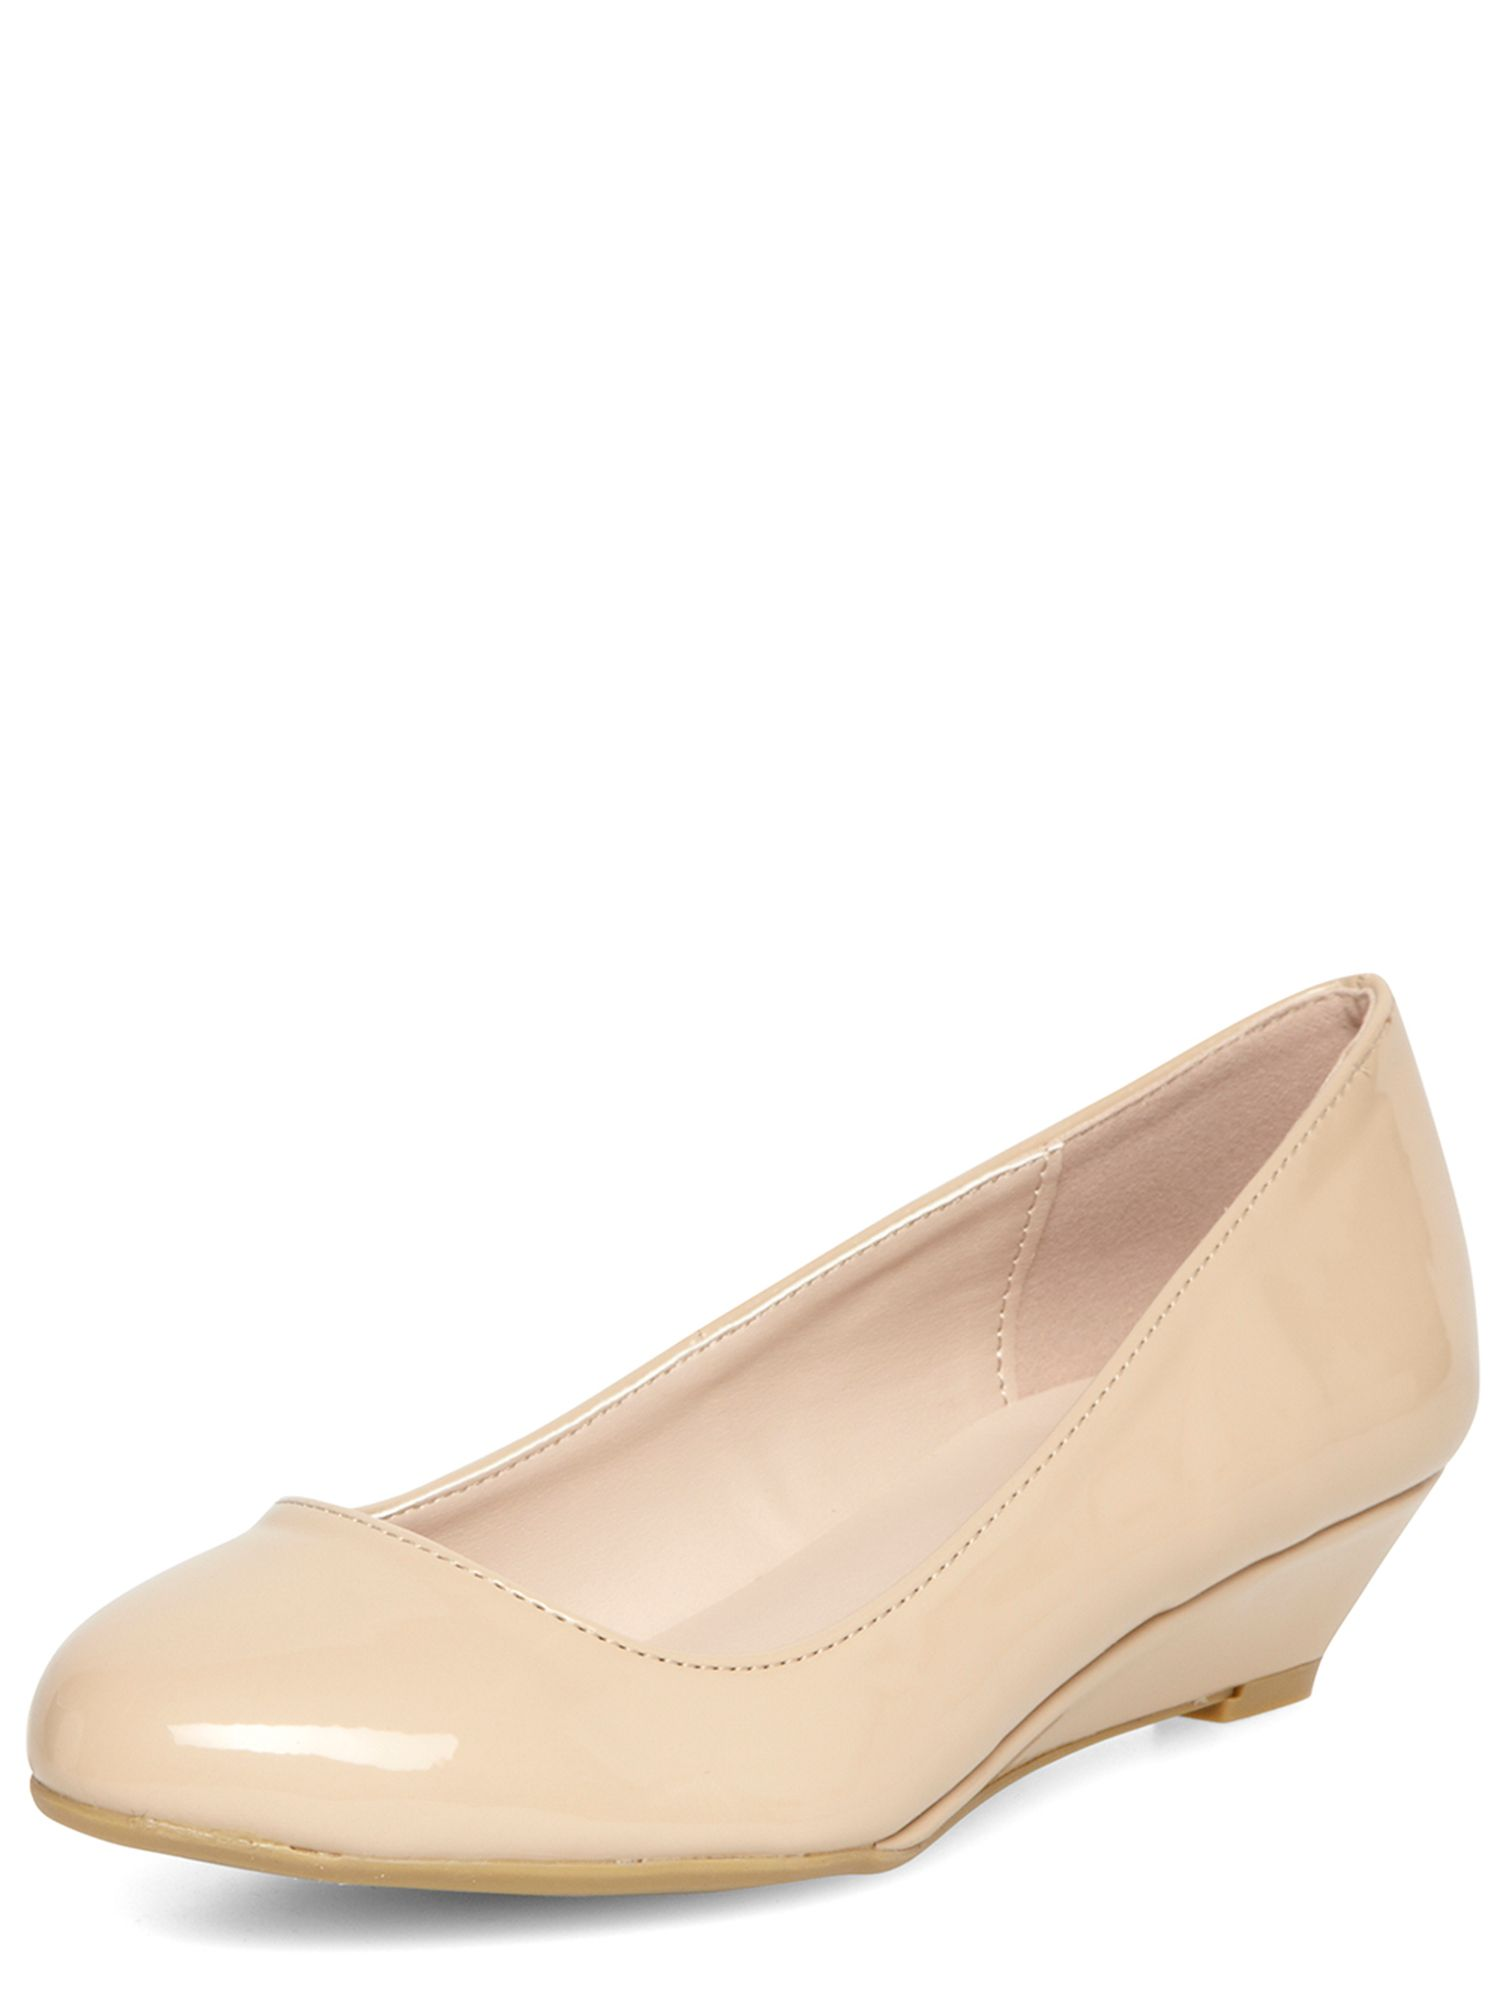 Low Heel Wedge Shoes